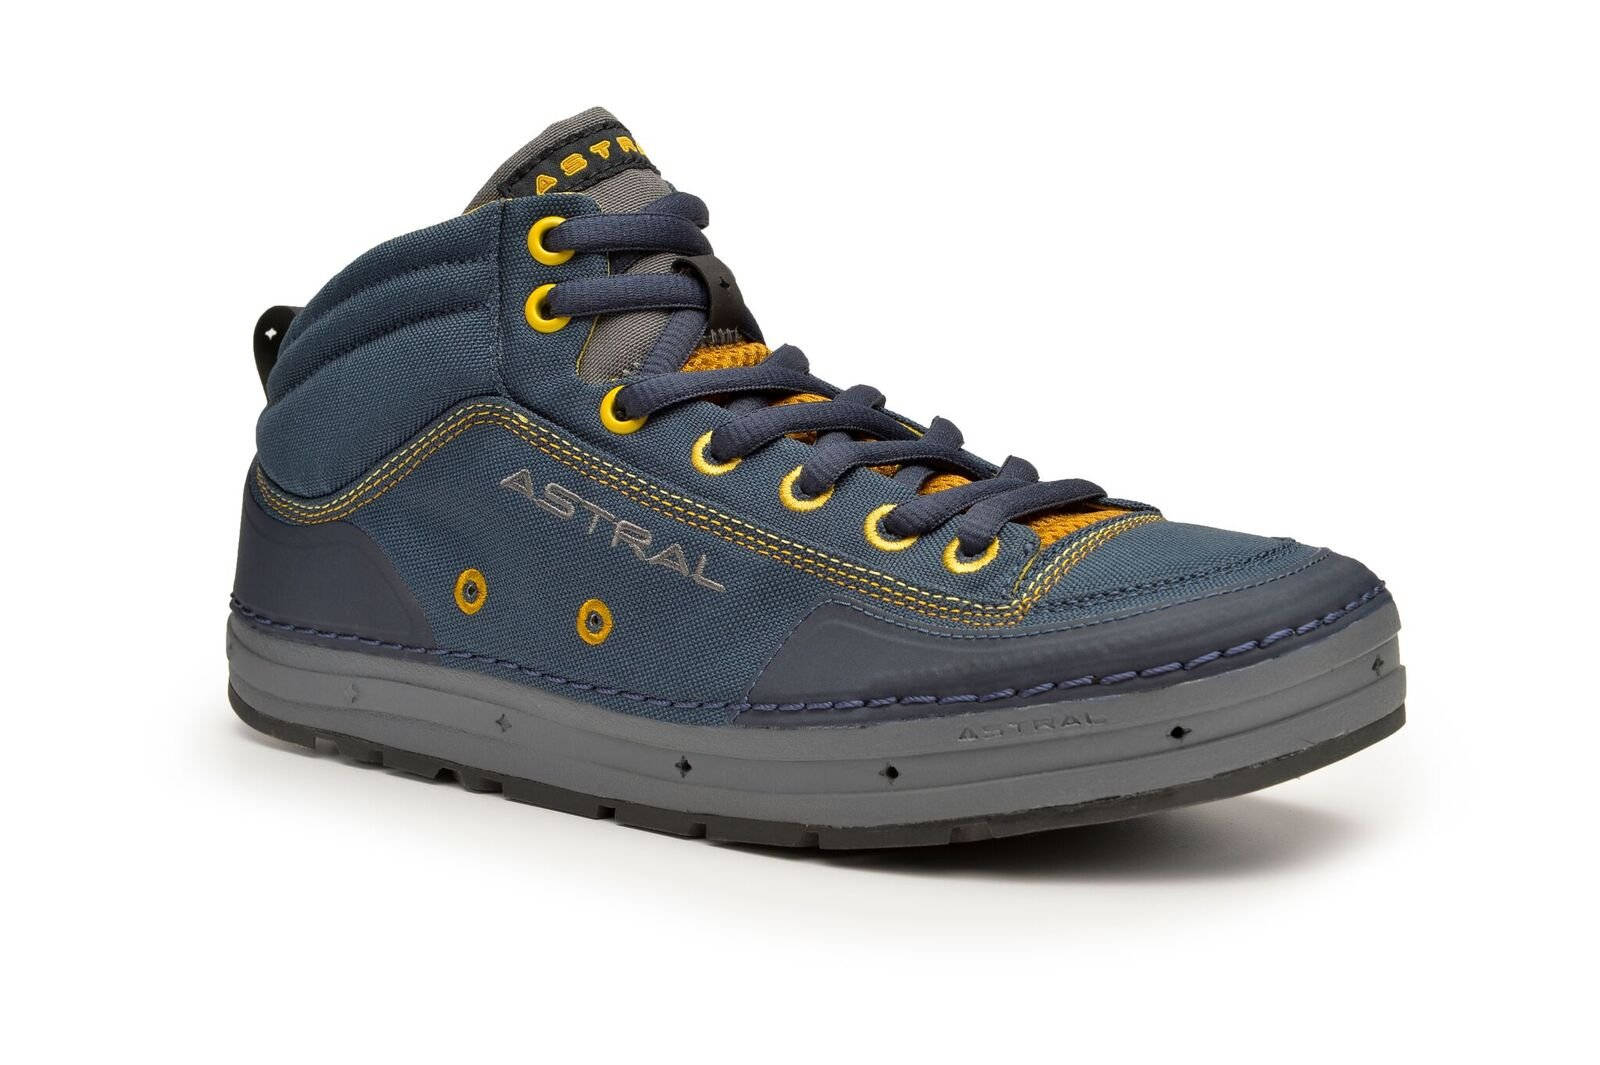 Astral Rassler Paddle shoe